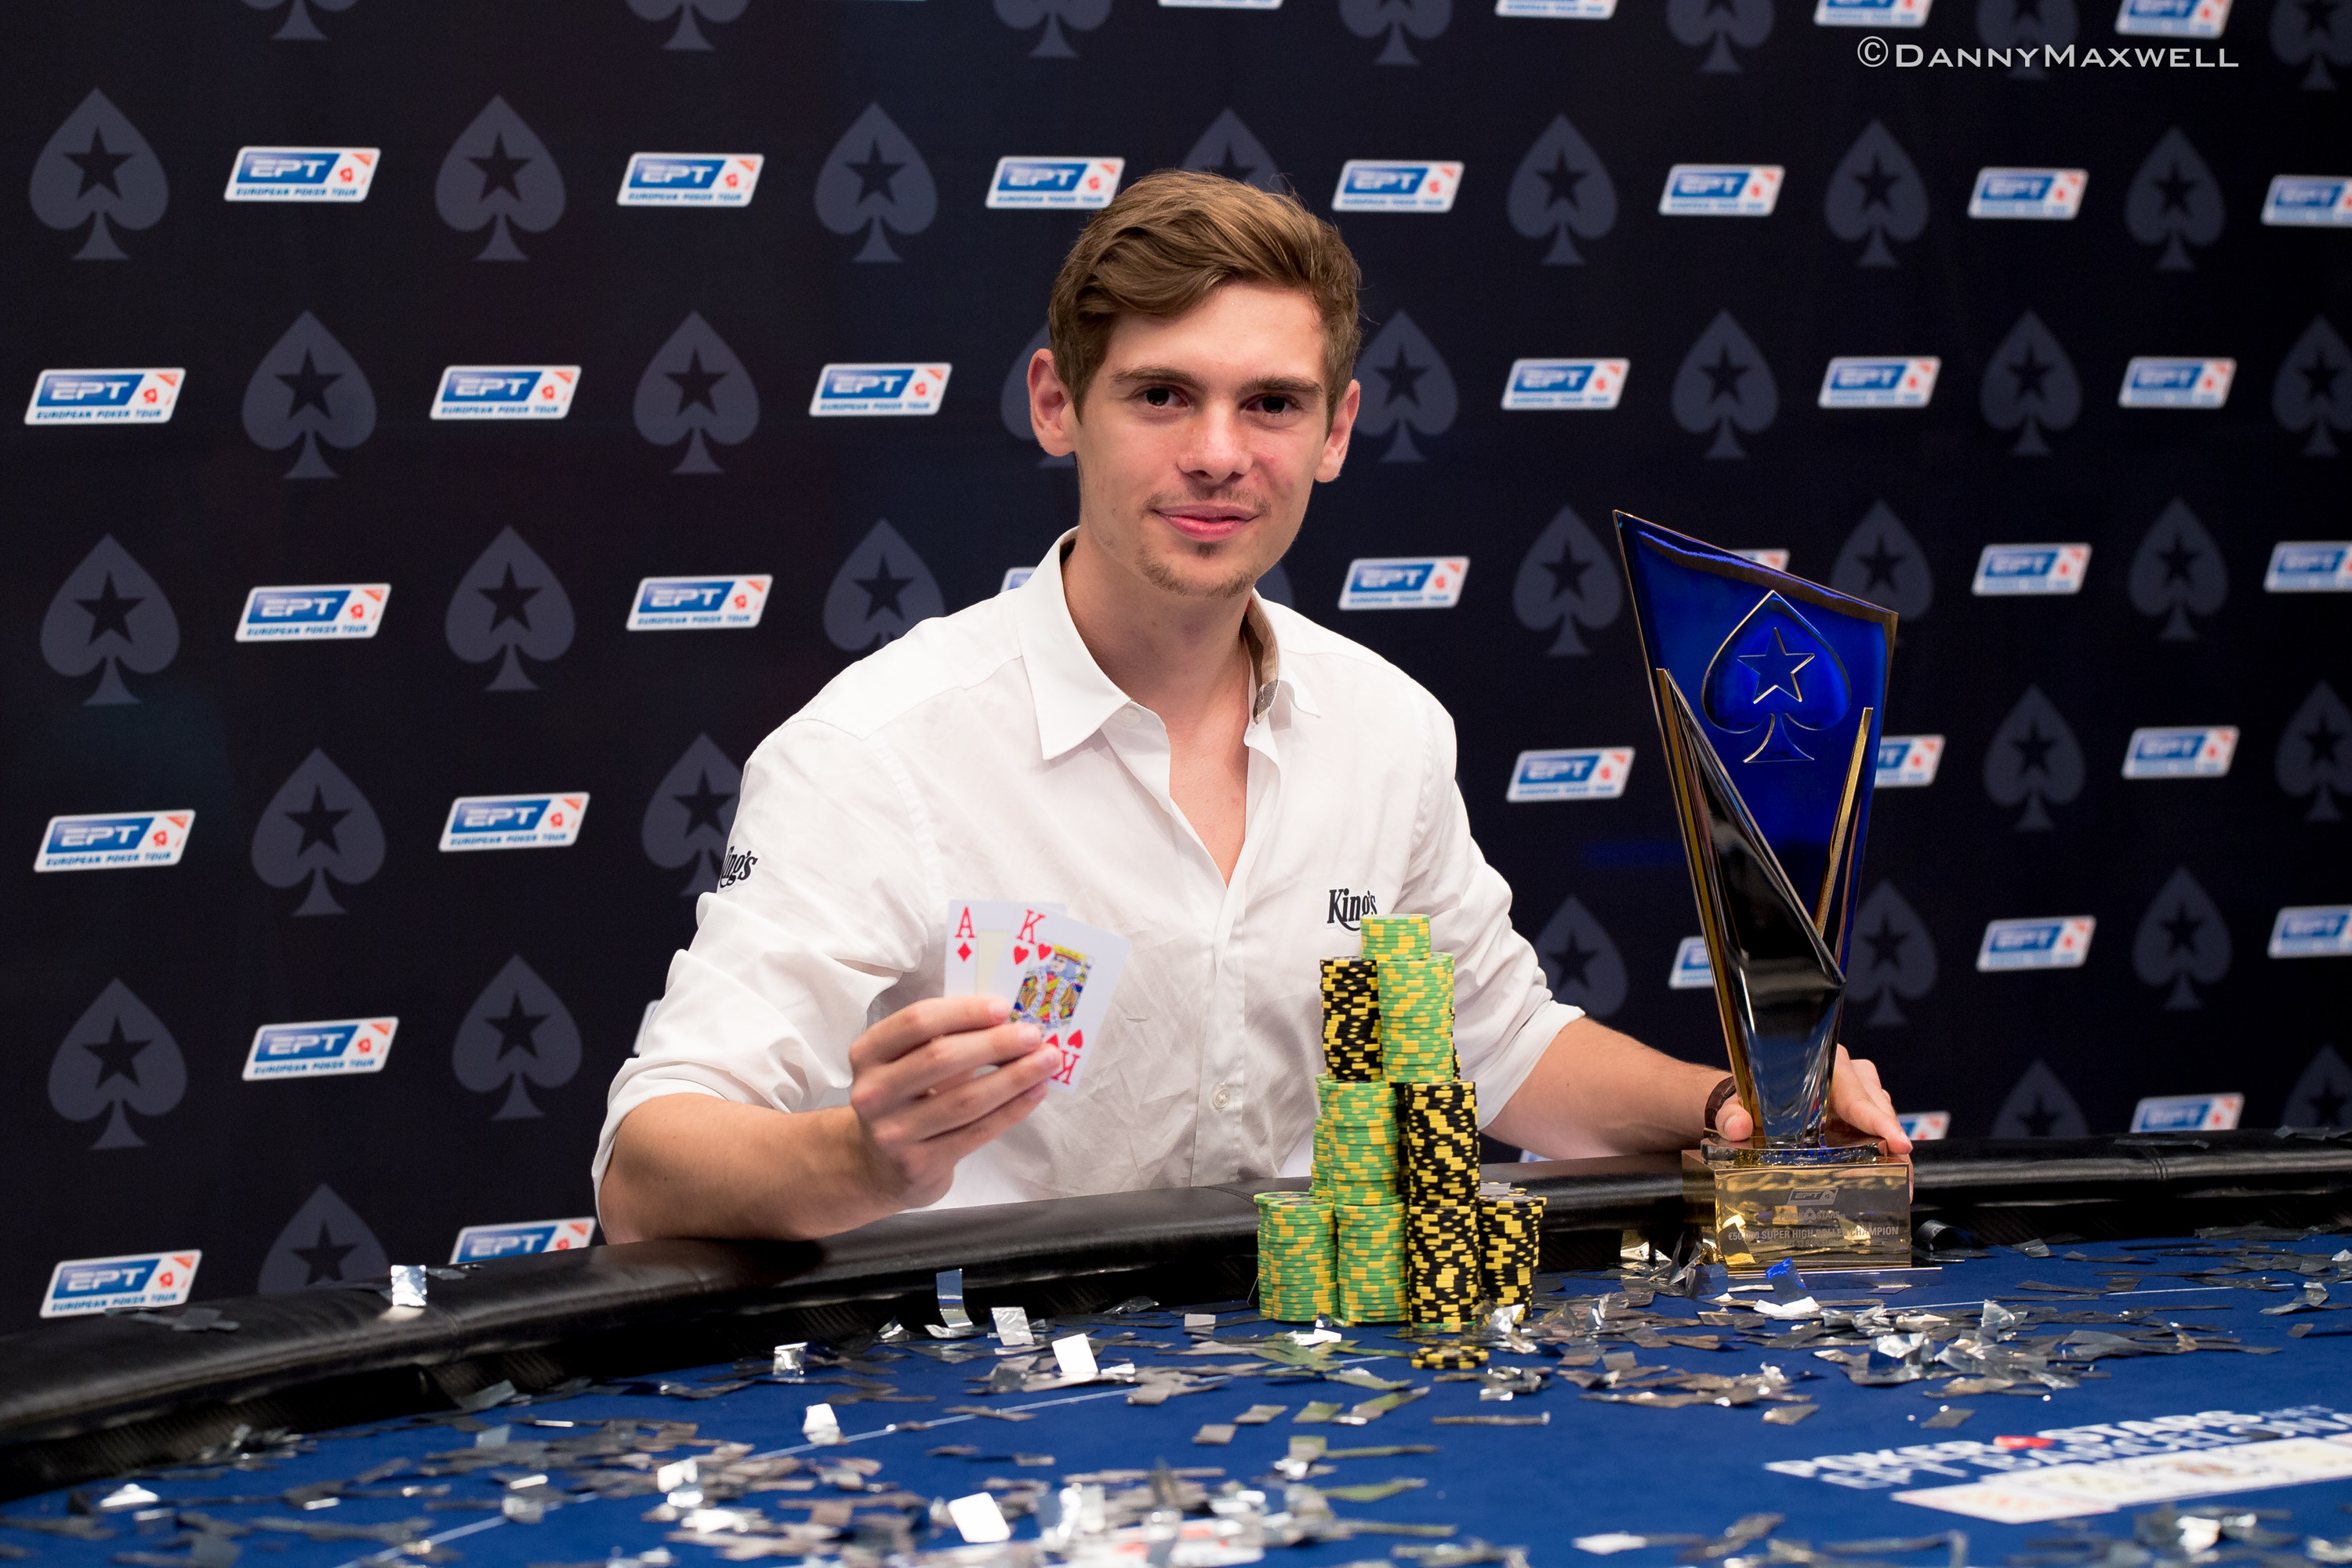 """Retired"" Fedor Holz Claims EPT Barcelona €50,000 Super High Roller Title for €1.3... 102"